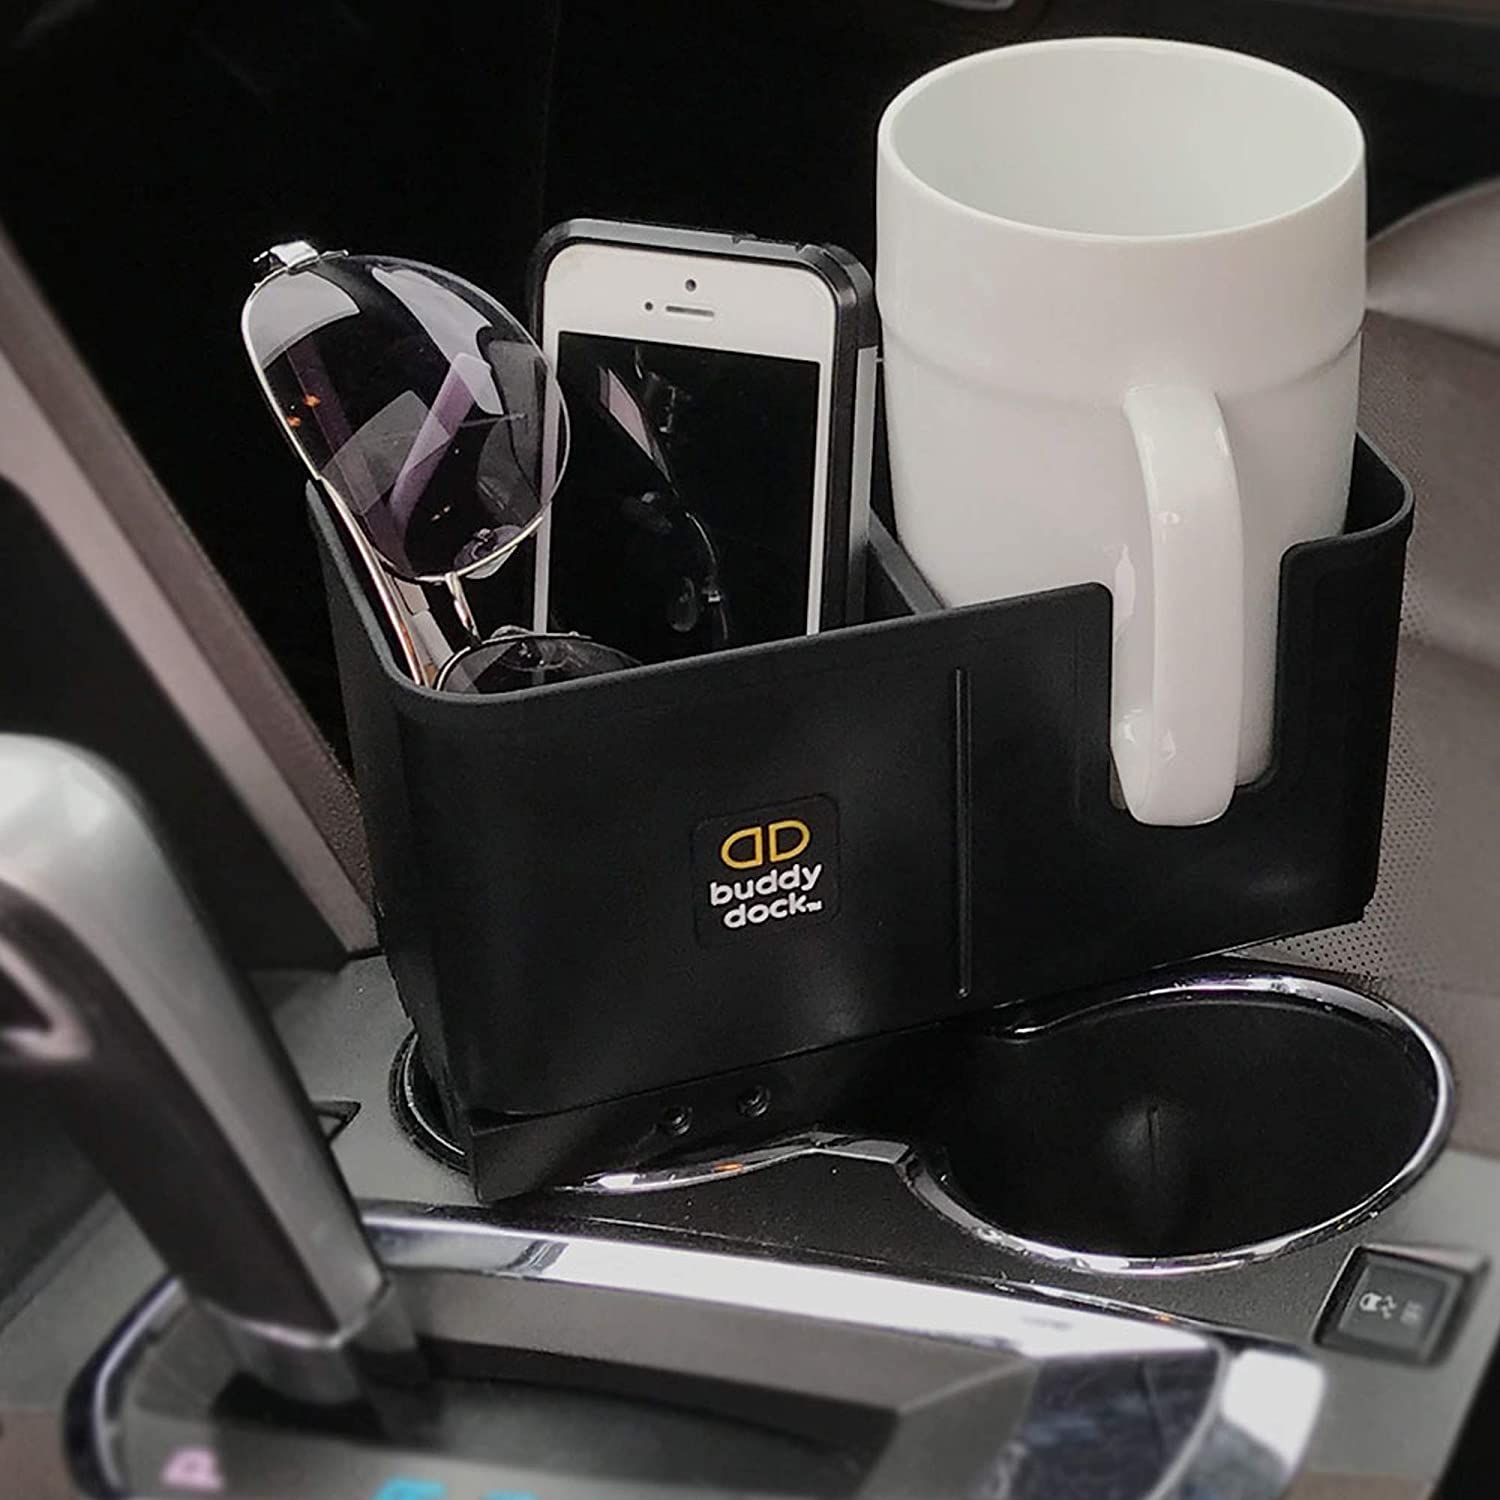 Buddy Dock Car Cup Holder Organizer Fits Any Cup Holder//Vehicle BD-2 Adjustable Sportsman Supply Inc